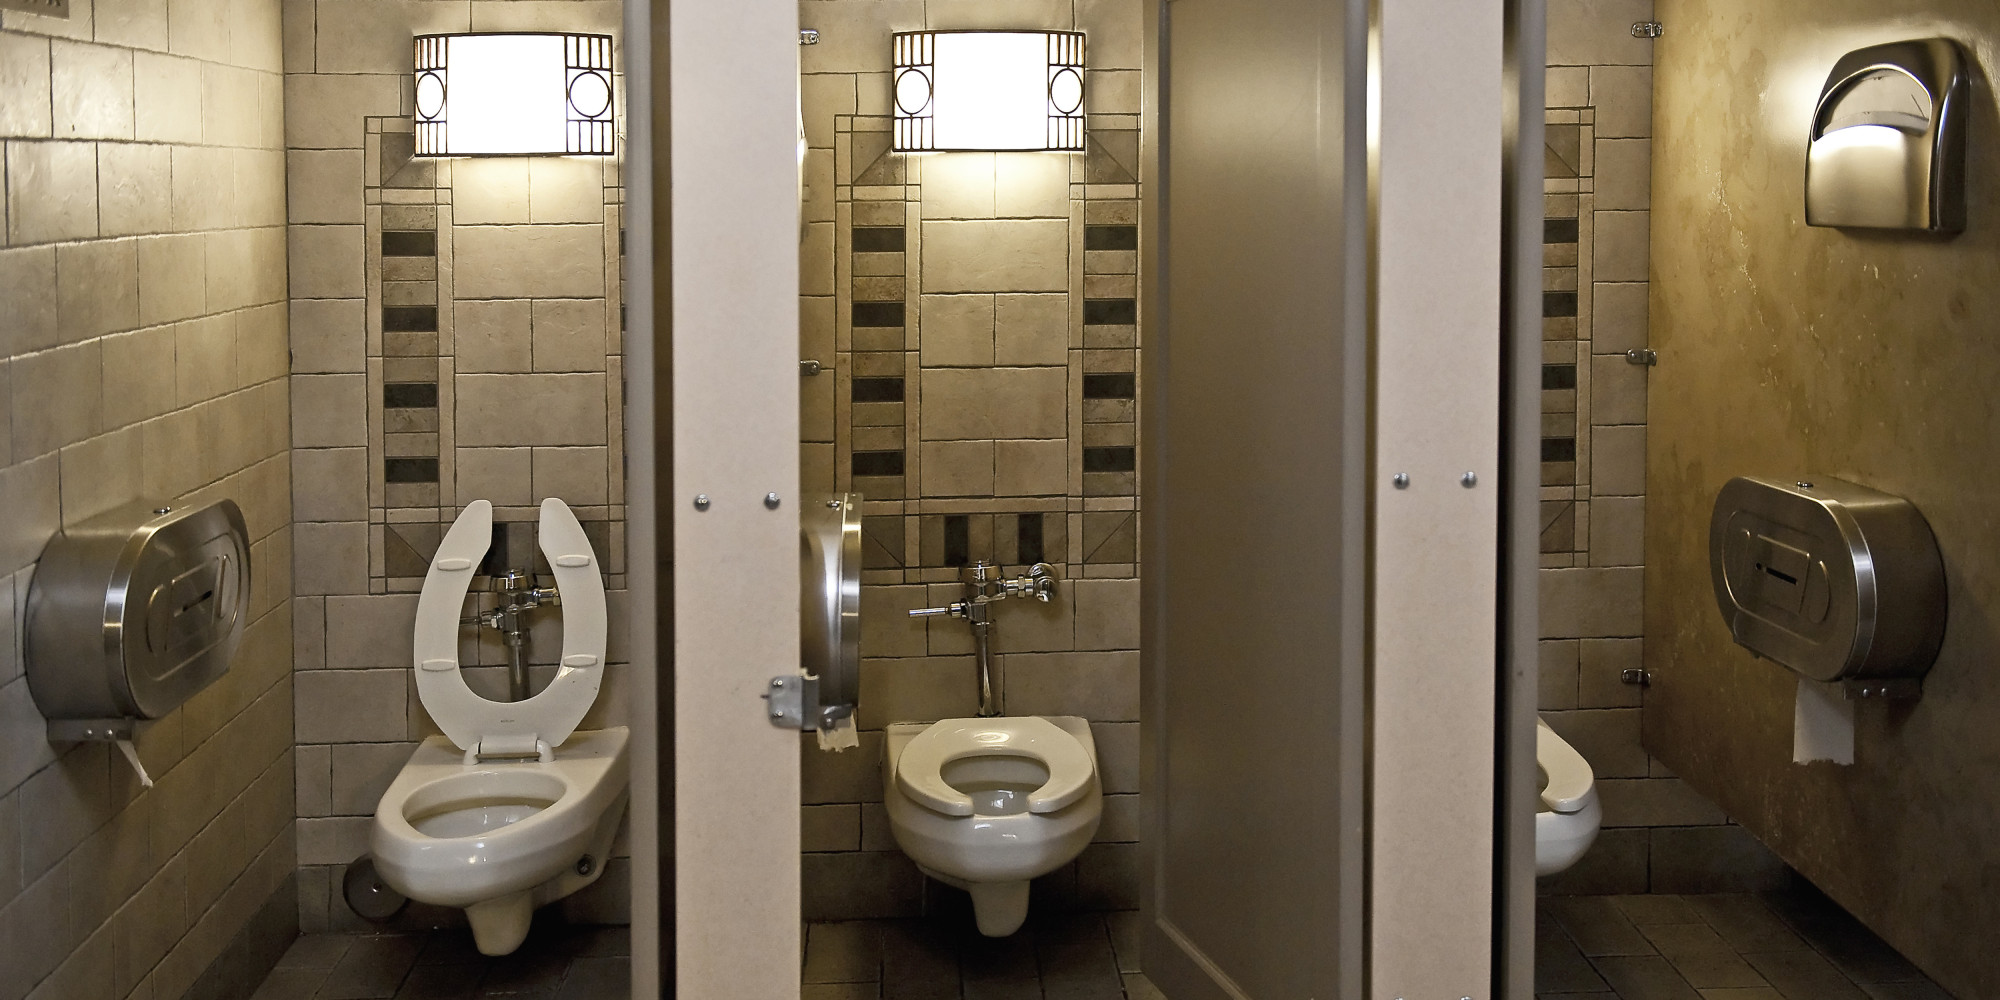 Worlds Most Honest Janitor Gets To Keep He Found In Toilet - Cheap bathroom stalls